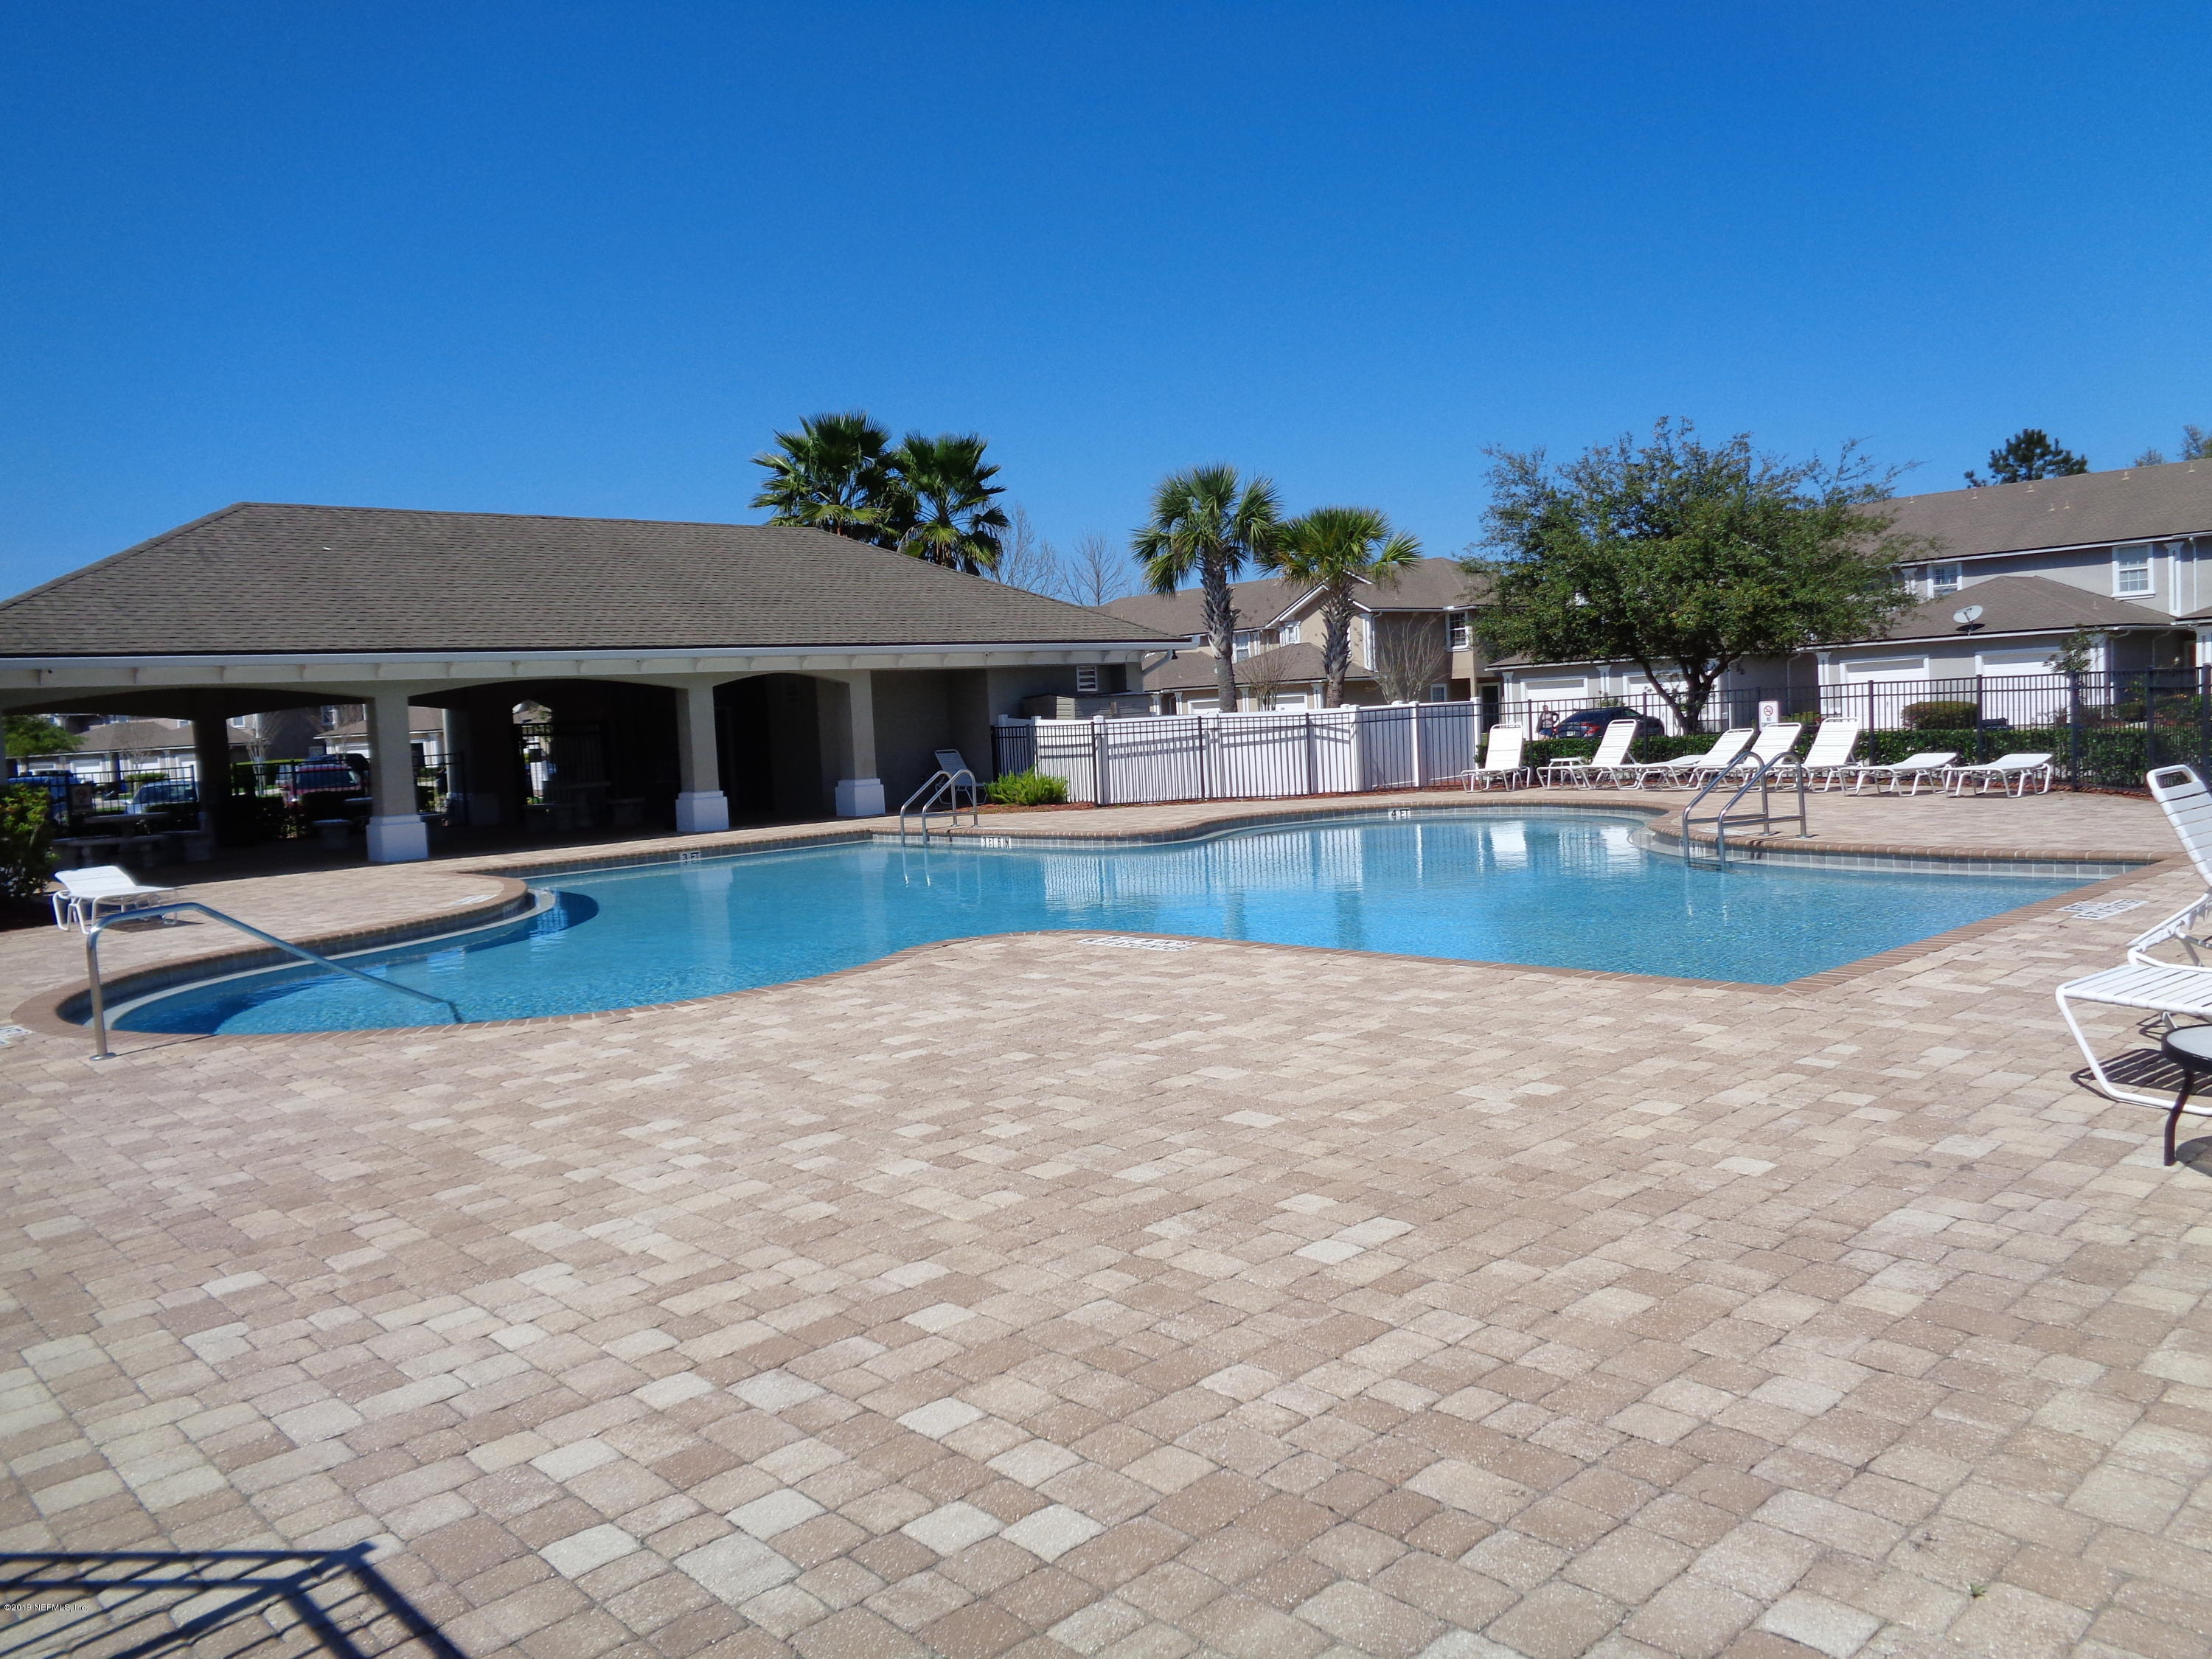 697 SCRUB JAY, ST AUGUSTINE, FLORIDA 32092, 3 Bedrooms Bedrooms, ,2 BathroomsBathrooms,Residential - townhome,For sale,SCRUB JAY,984675